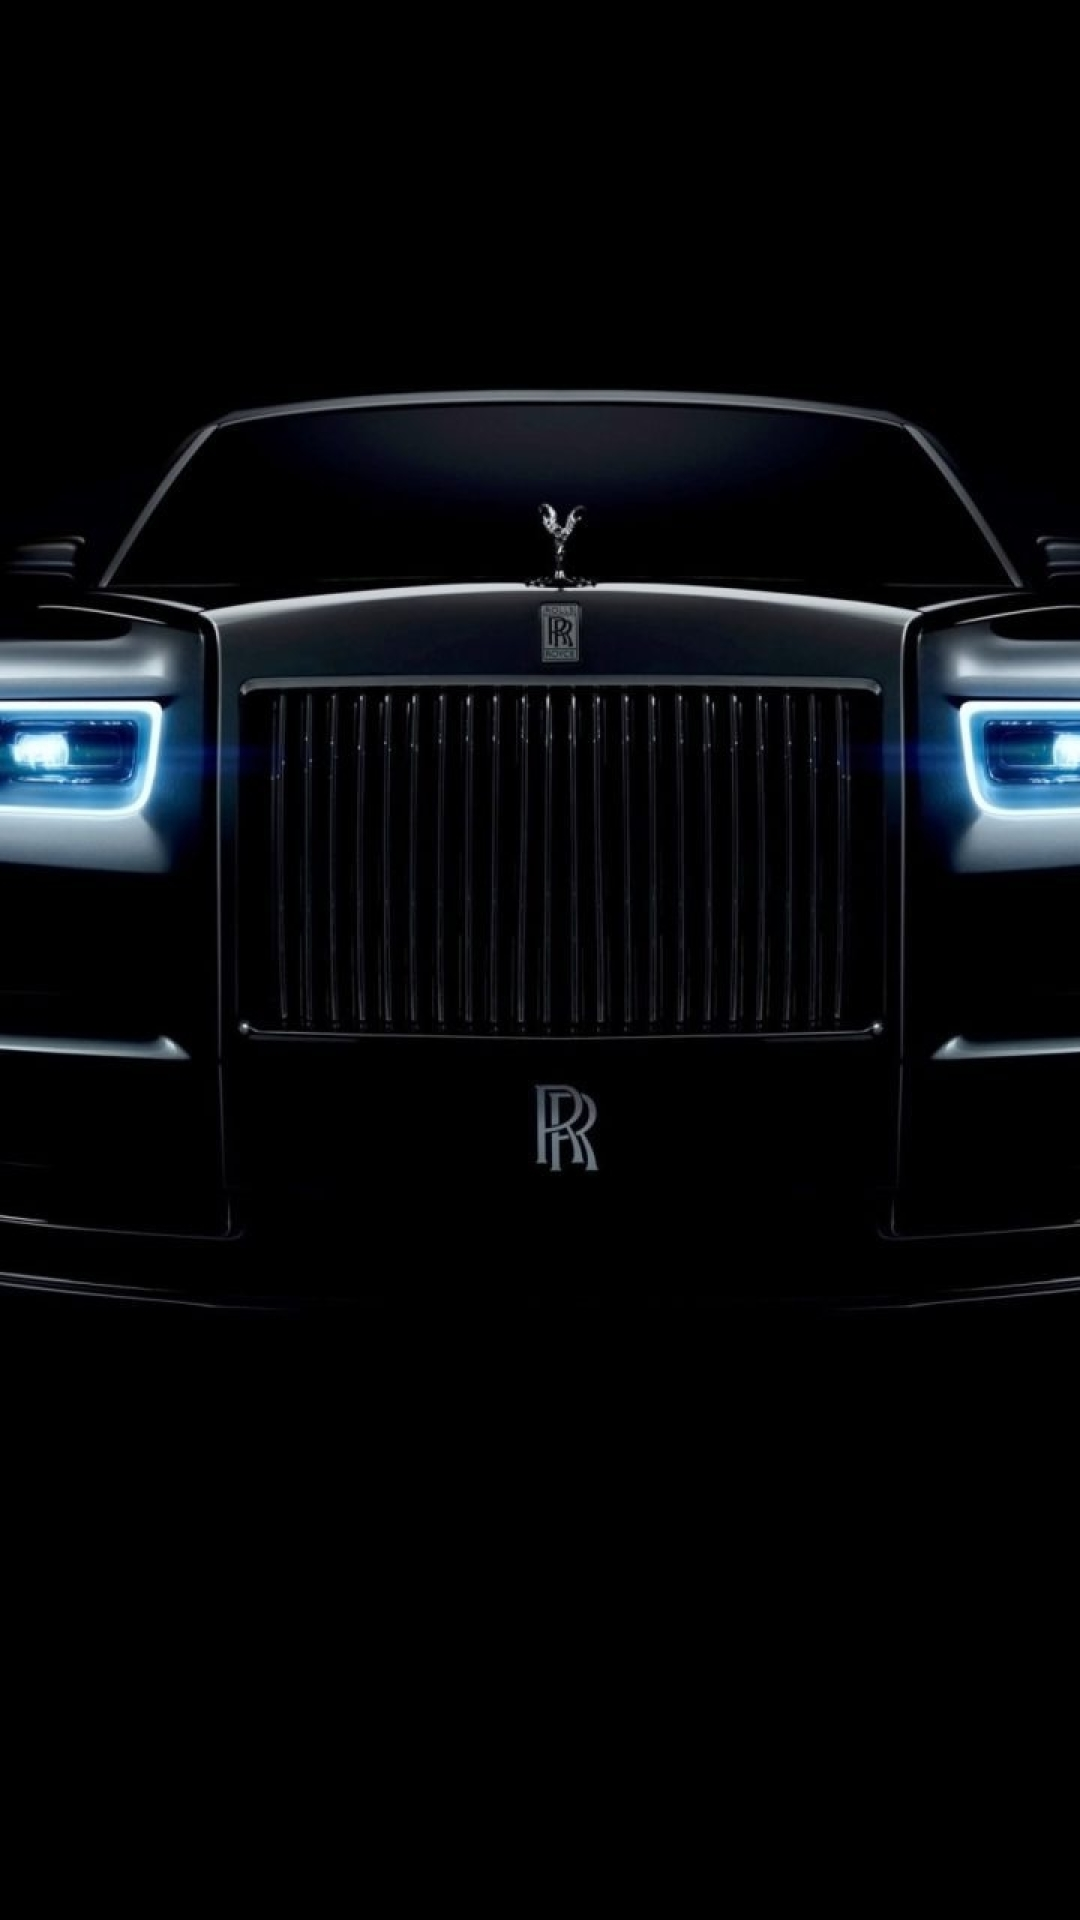 1080x1920 Rolls Royce Phantom Front Iphone 7 6s 6 Plus And Pixel Xl One Plus 3 3t 5 Wallpaper Hd Cars 4k Wallpapers Images Photos And Background